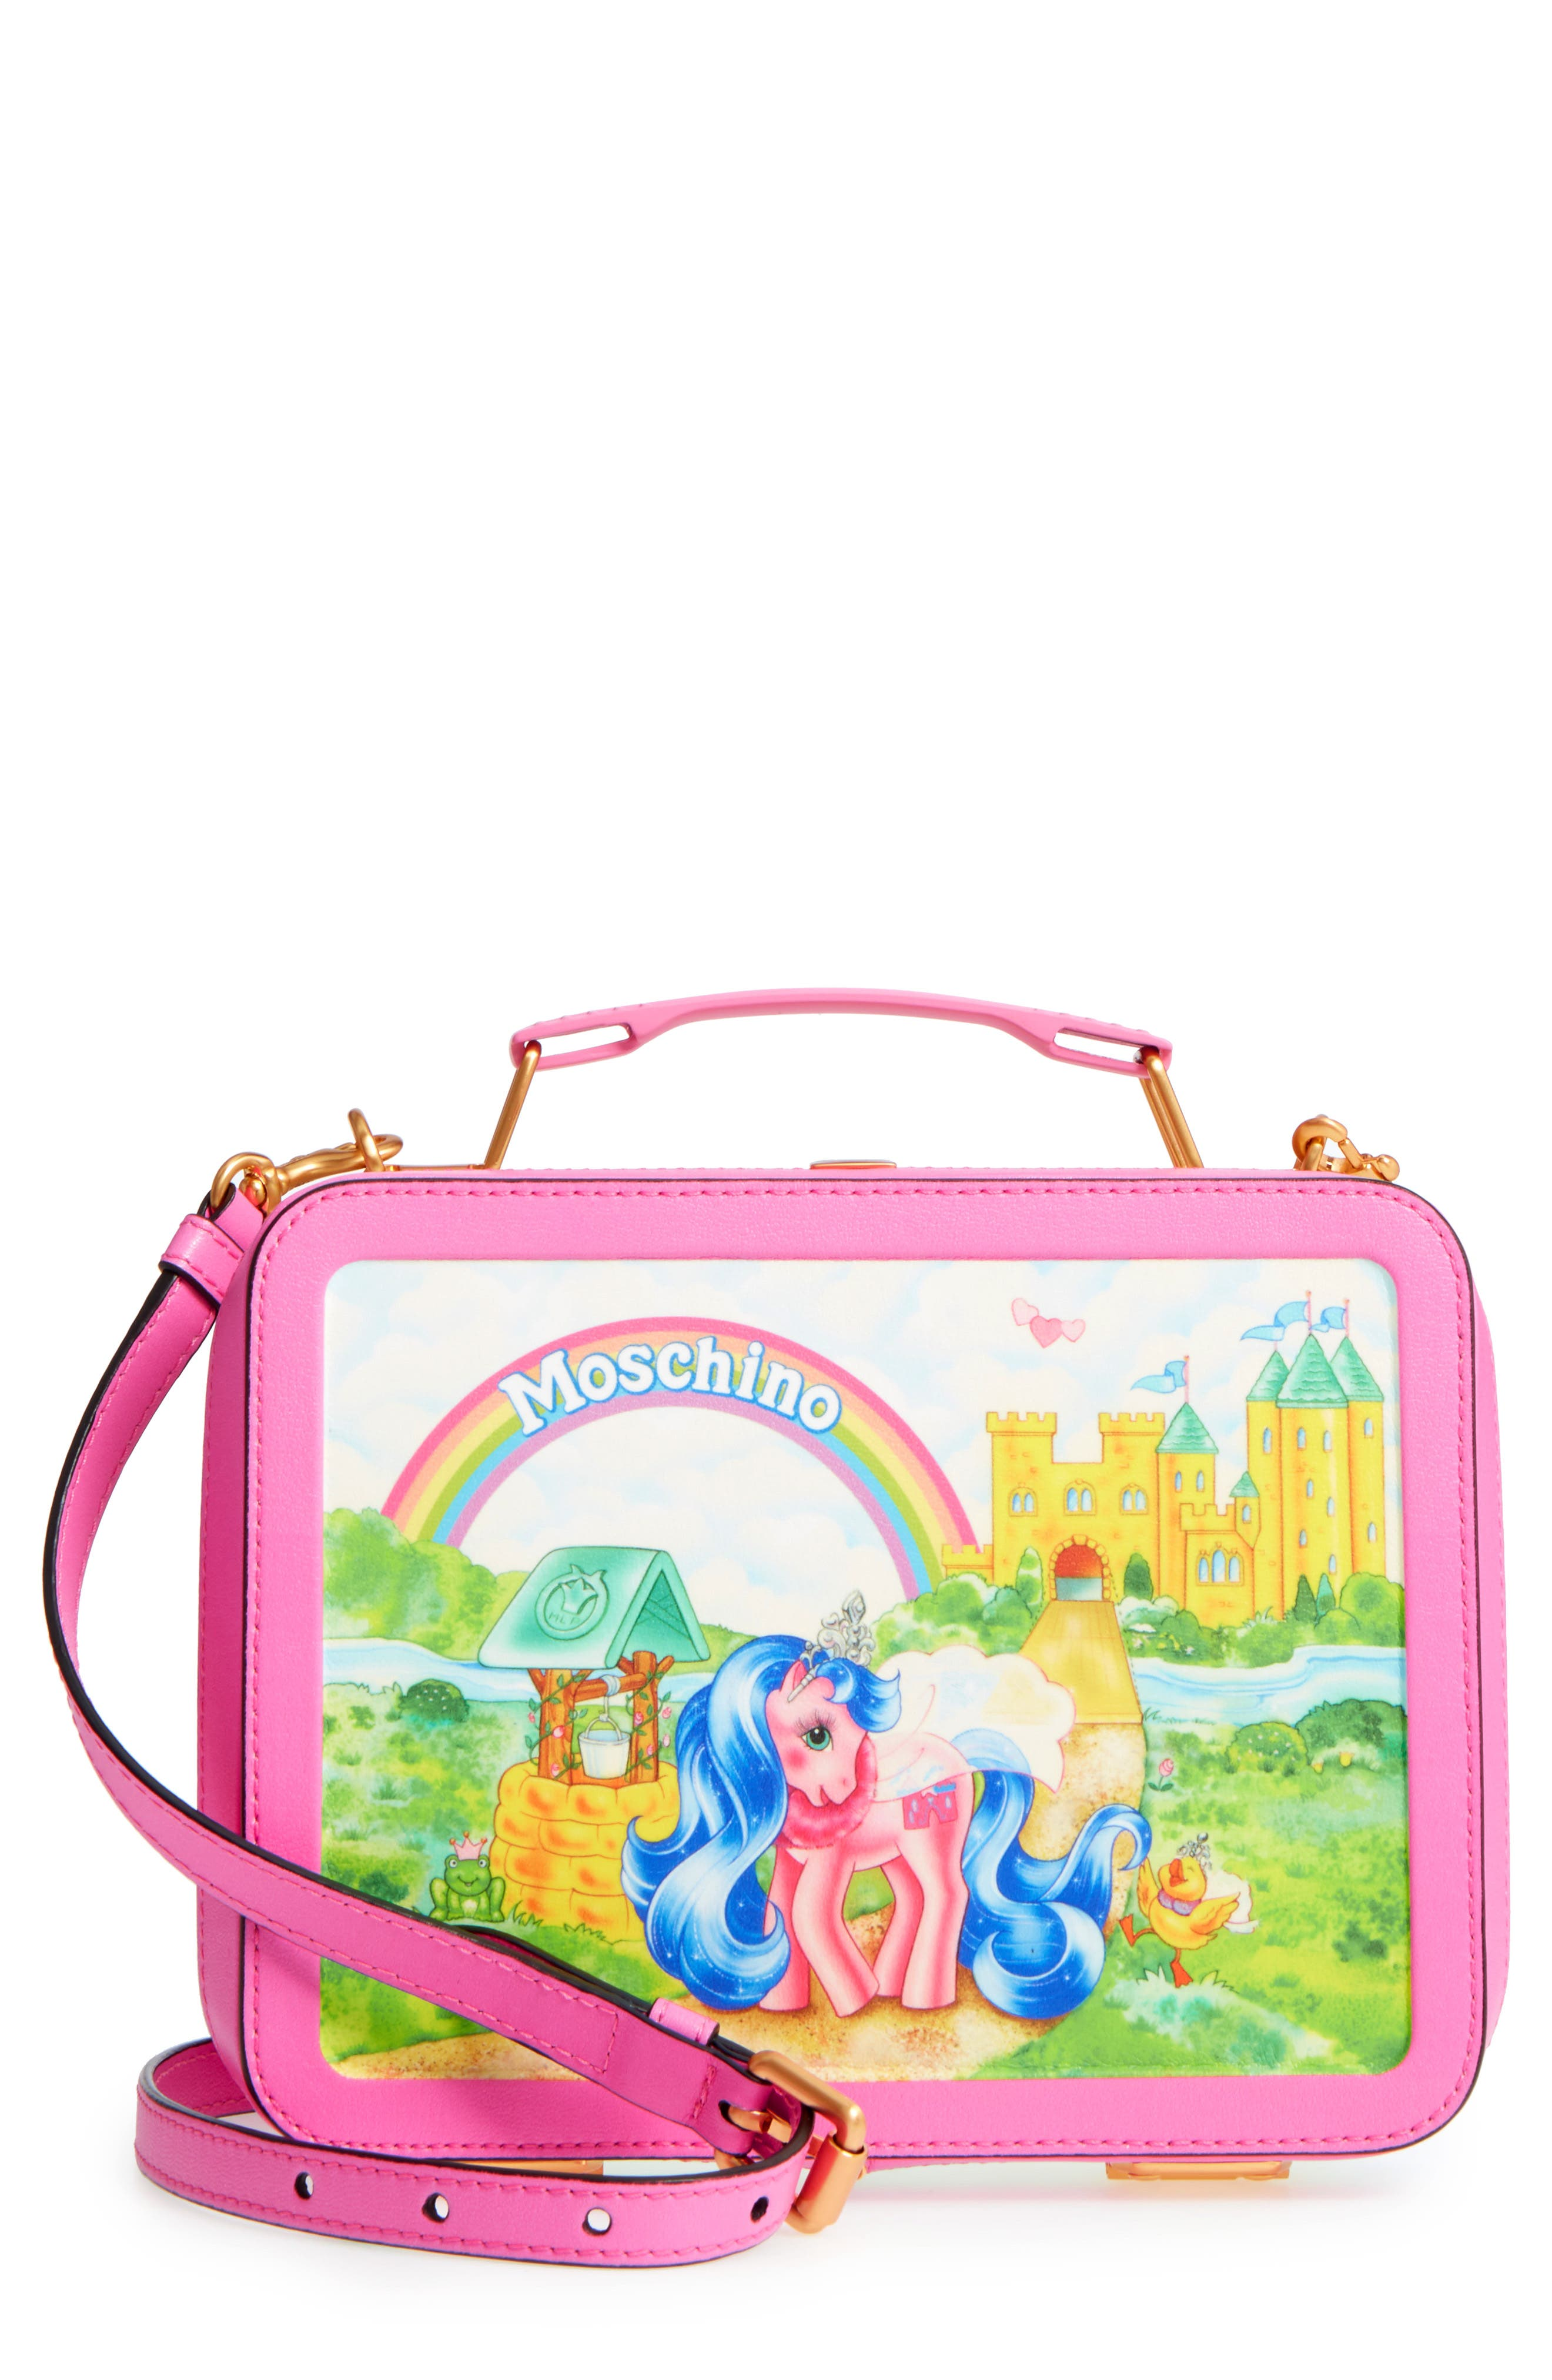 x My Little Pony Leather Lunch Box,                             Main thumbnail 1, color,                             650